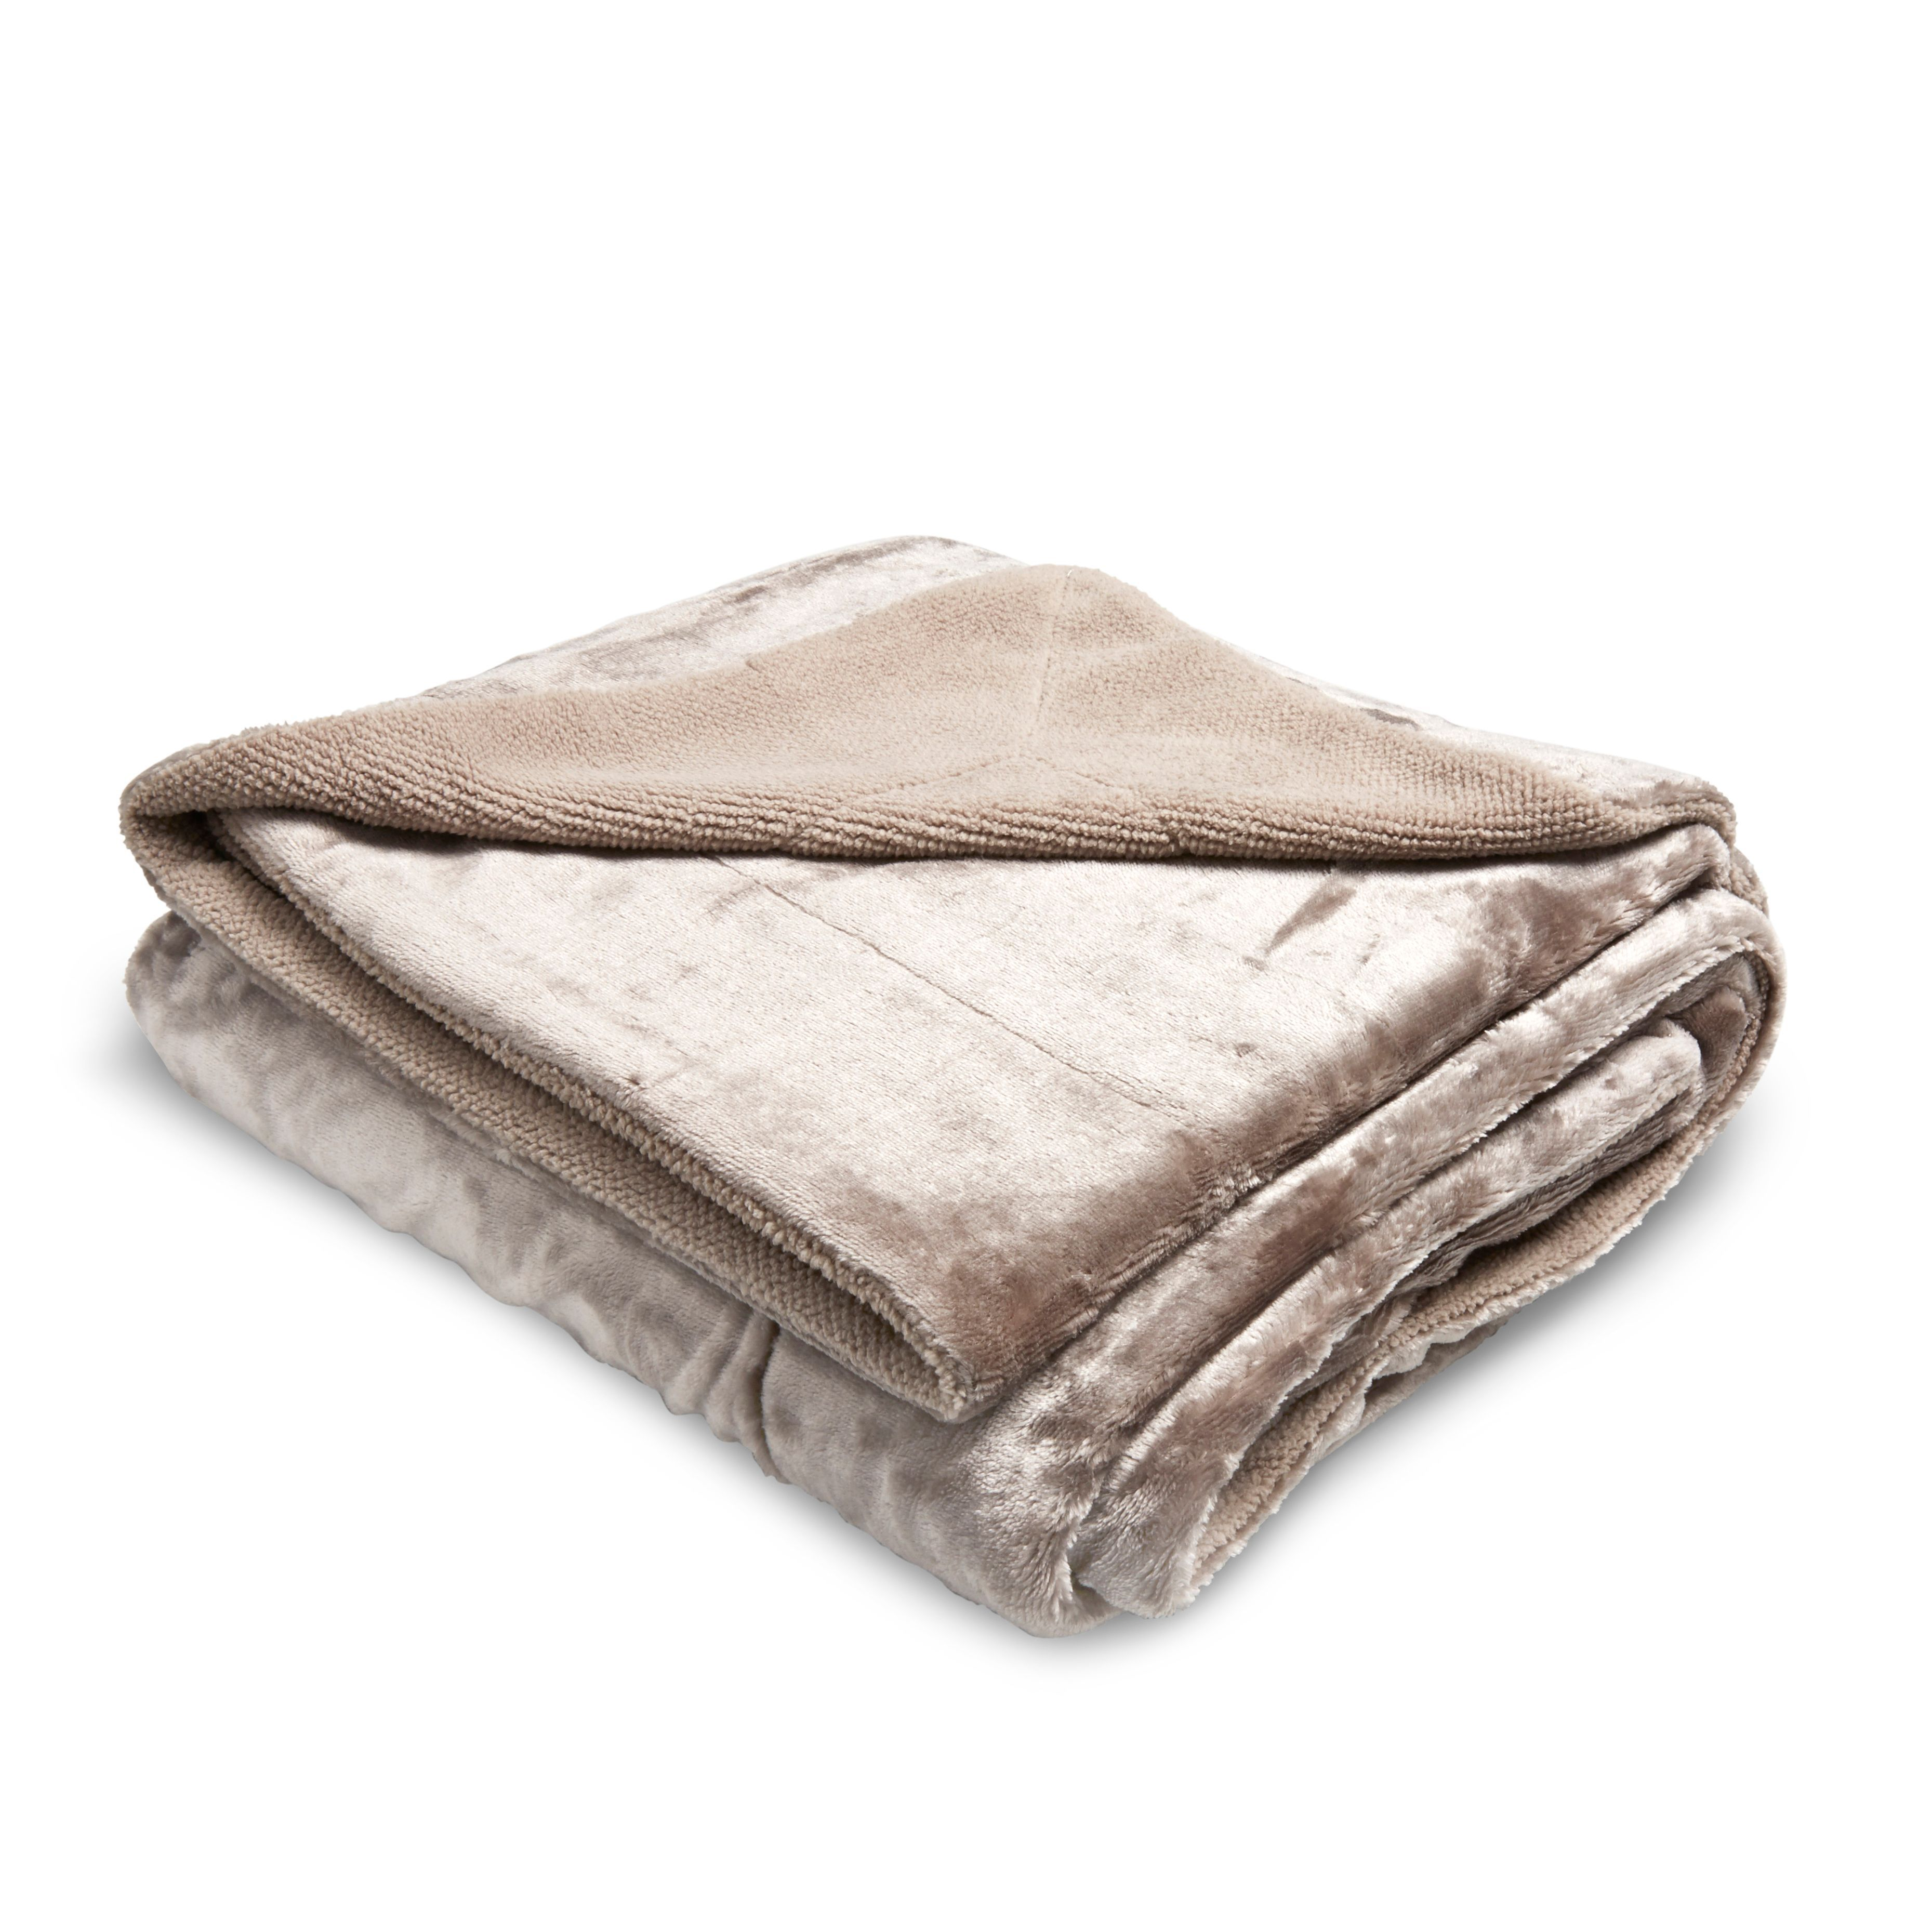 Find great deals on eBay for taupe throw blanket. Shop with confidence.